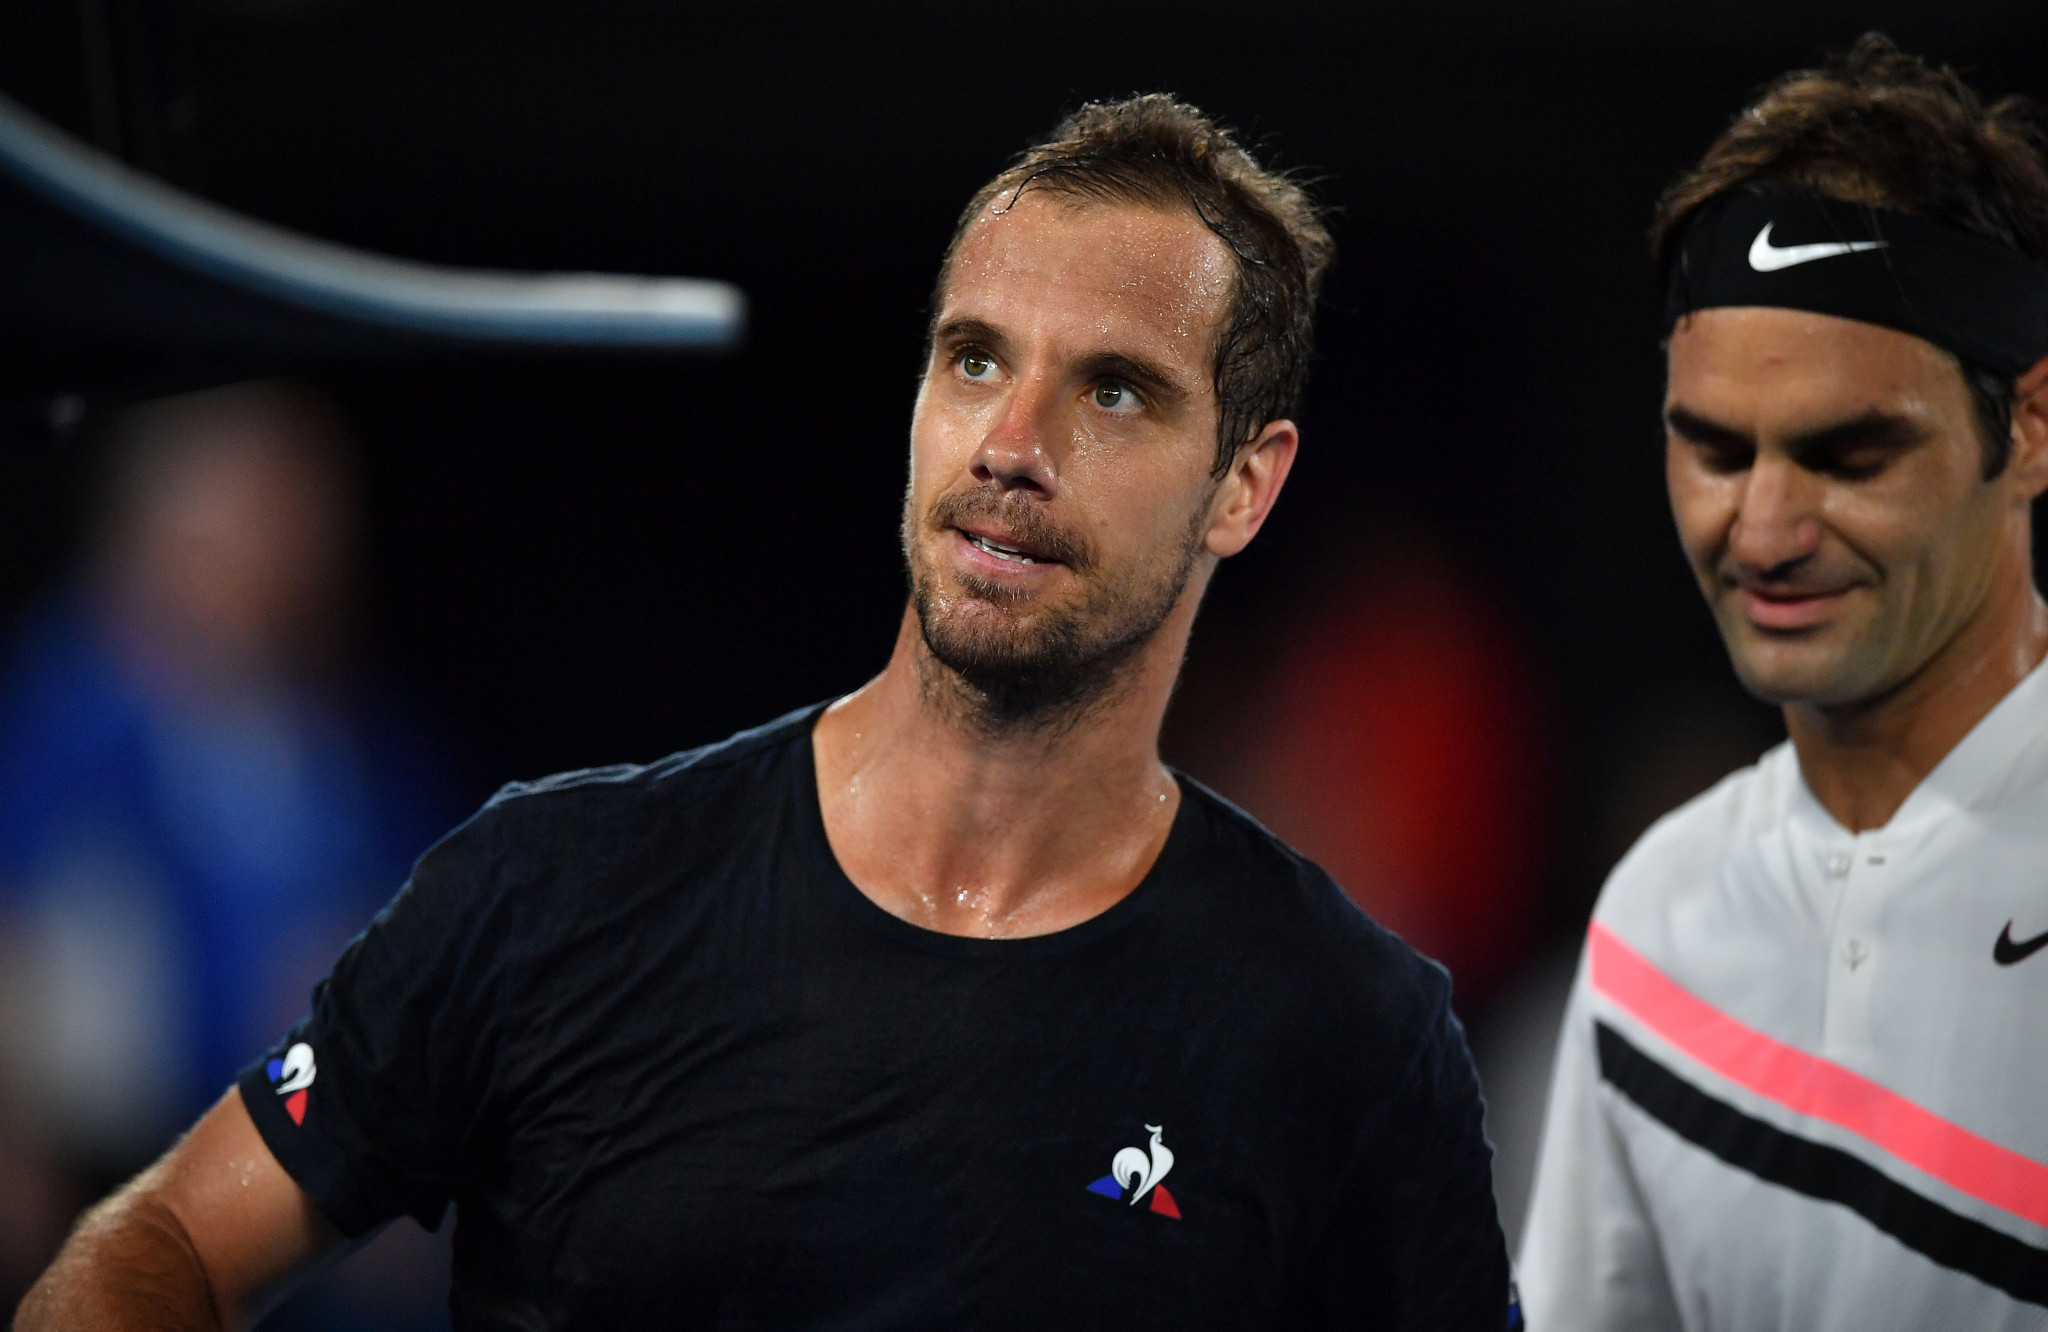 France's tennis player Richard Gasquet was also involved in doping kissing case ©Getty Images